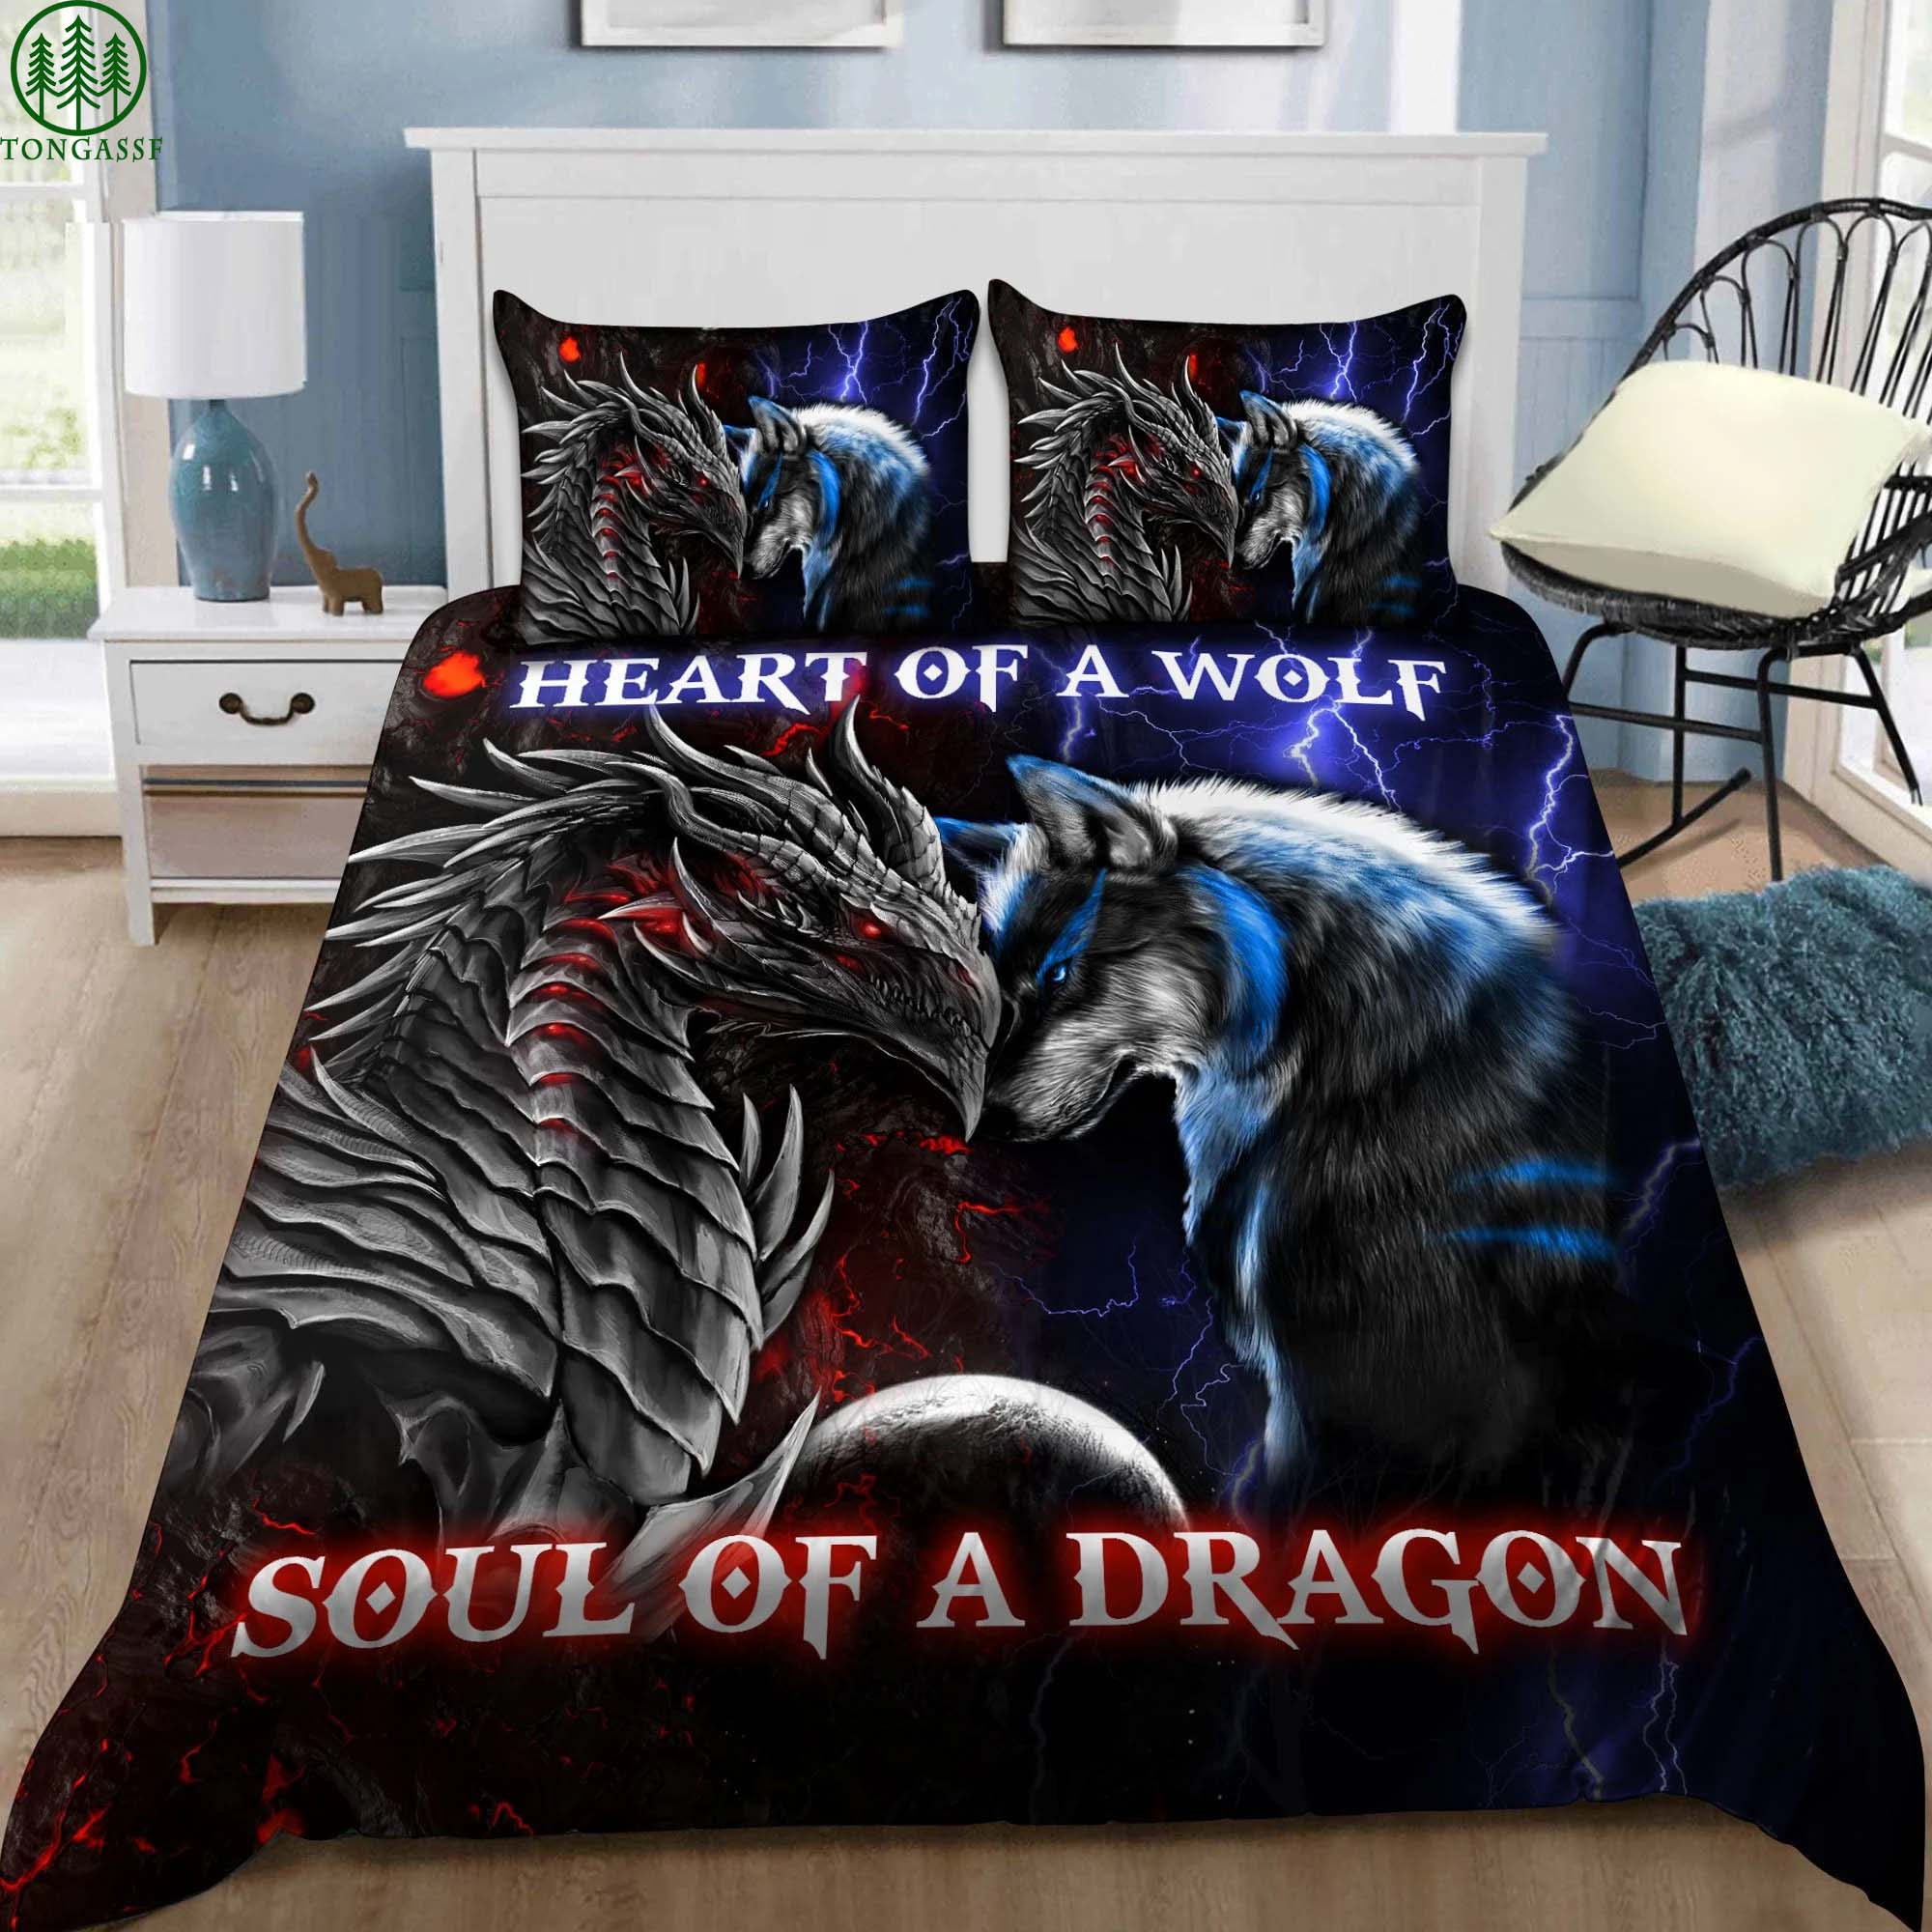 Battle of heart of a wolf and soul of a dragon bedding set